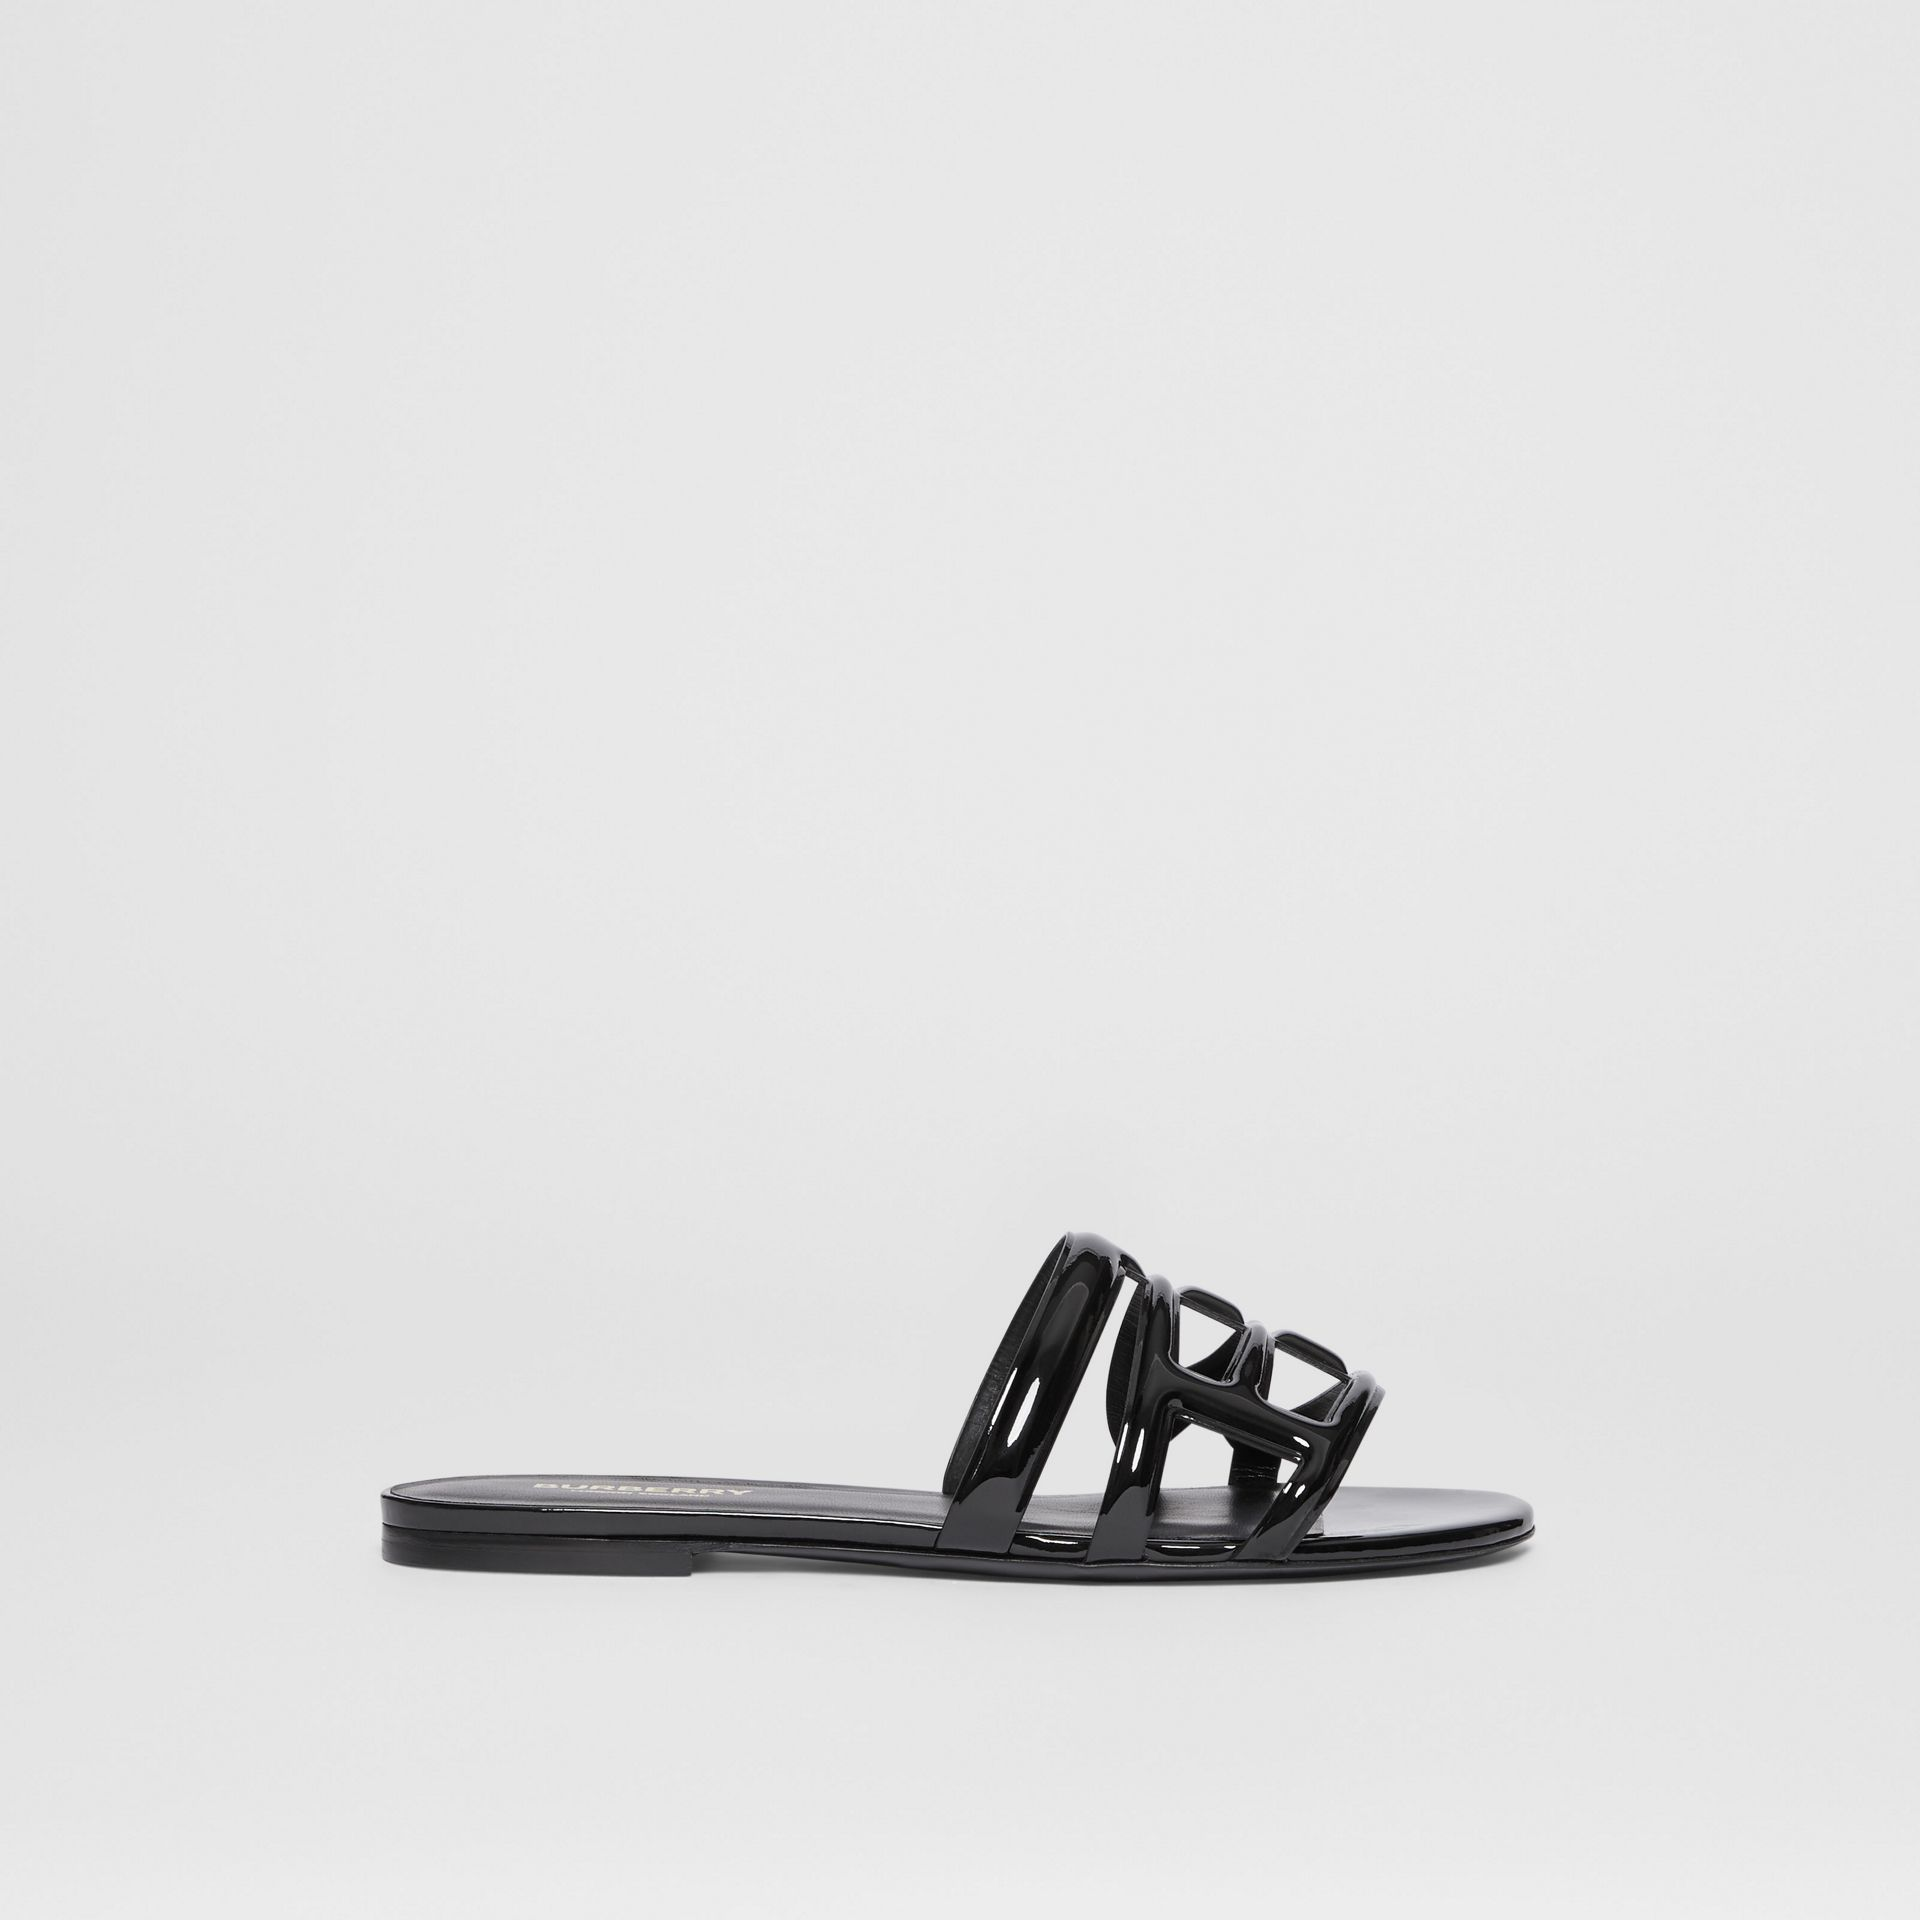 Monogram Motif Patent Leather Sandals in Black - Women | Burberry United Kingdom - gallery image 5